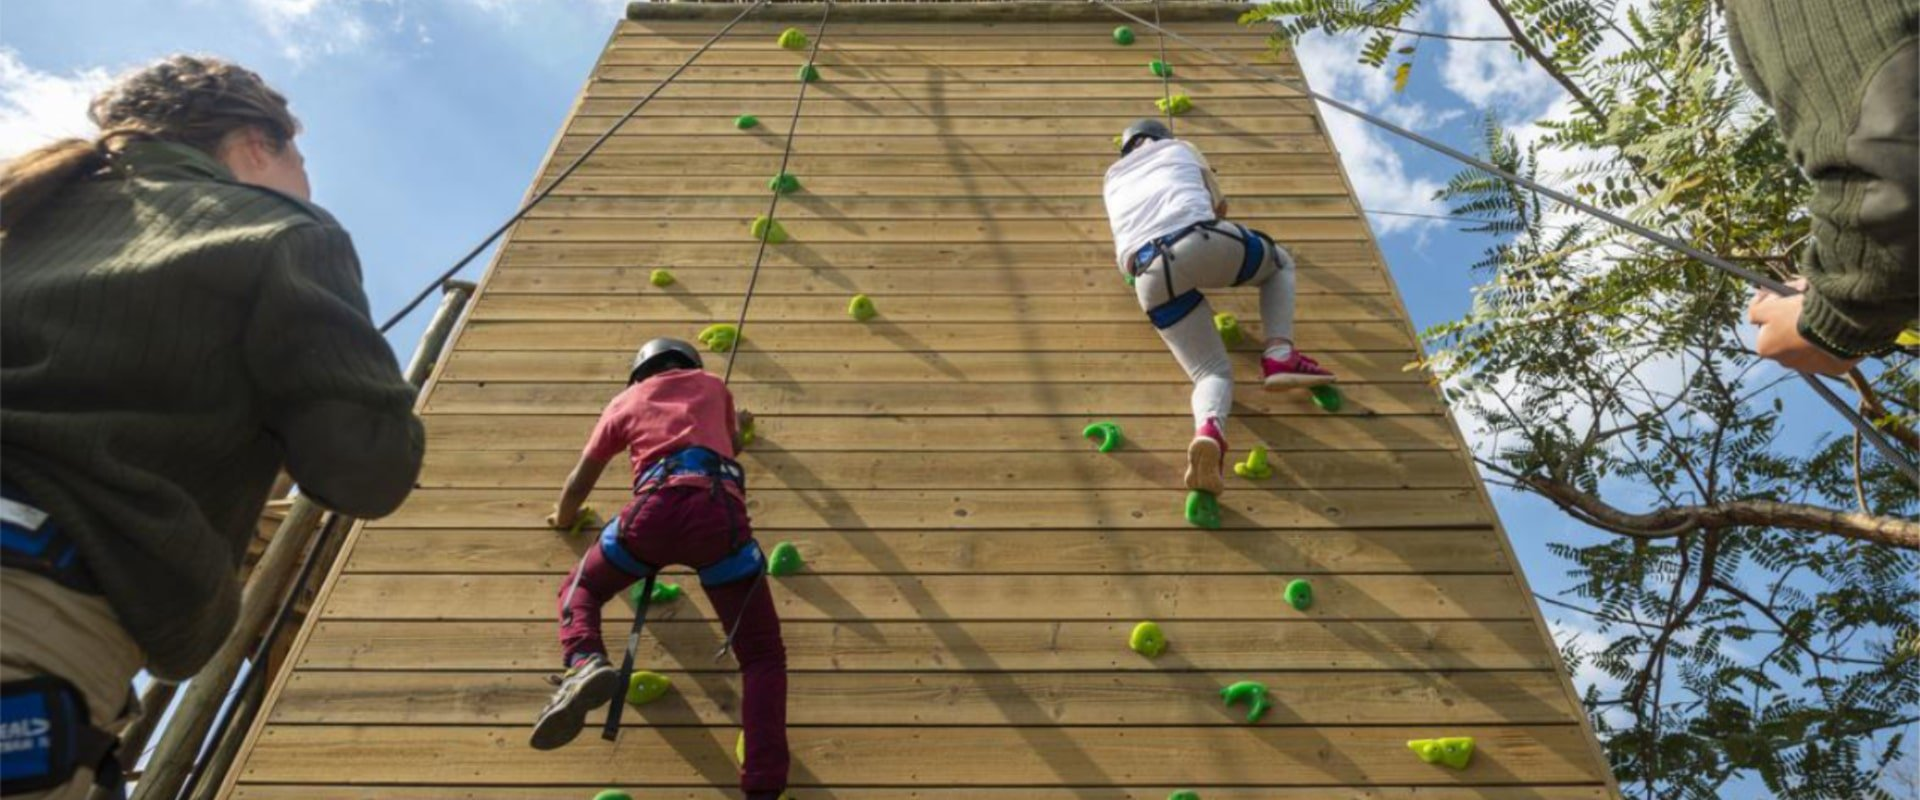 Rock climbing walls to keep little busy bodies active